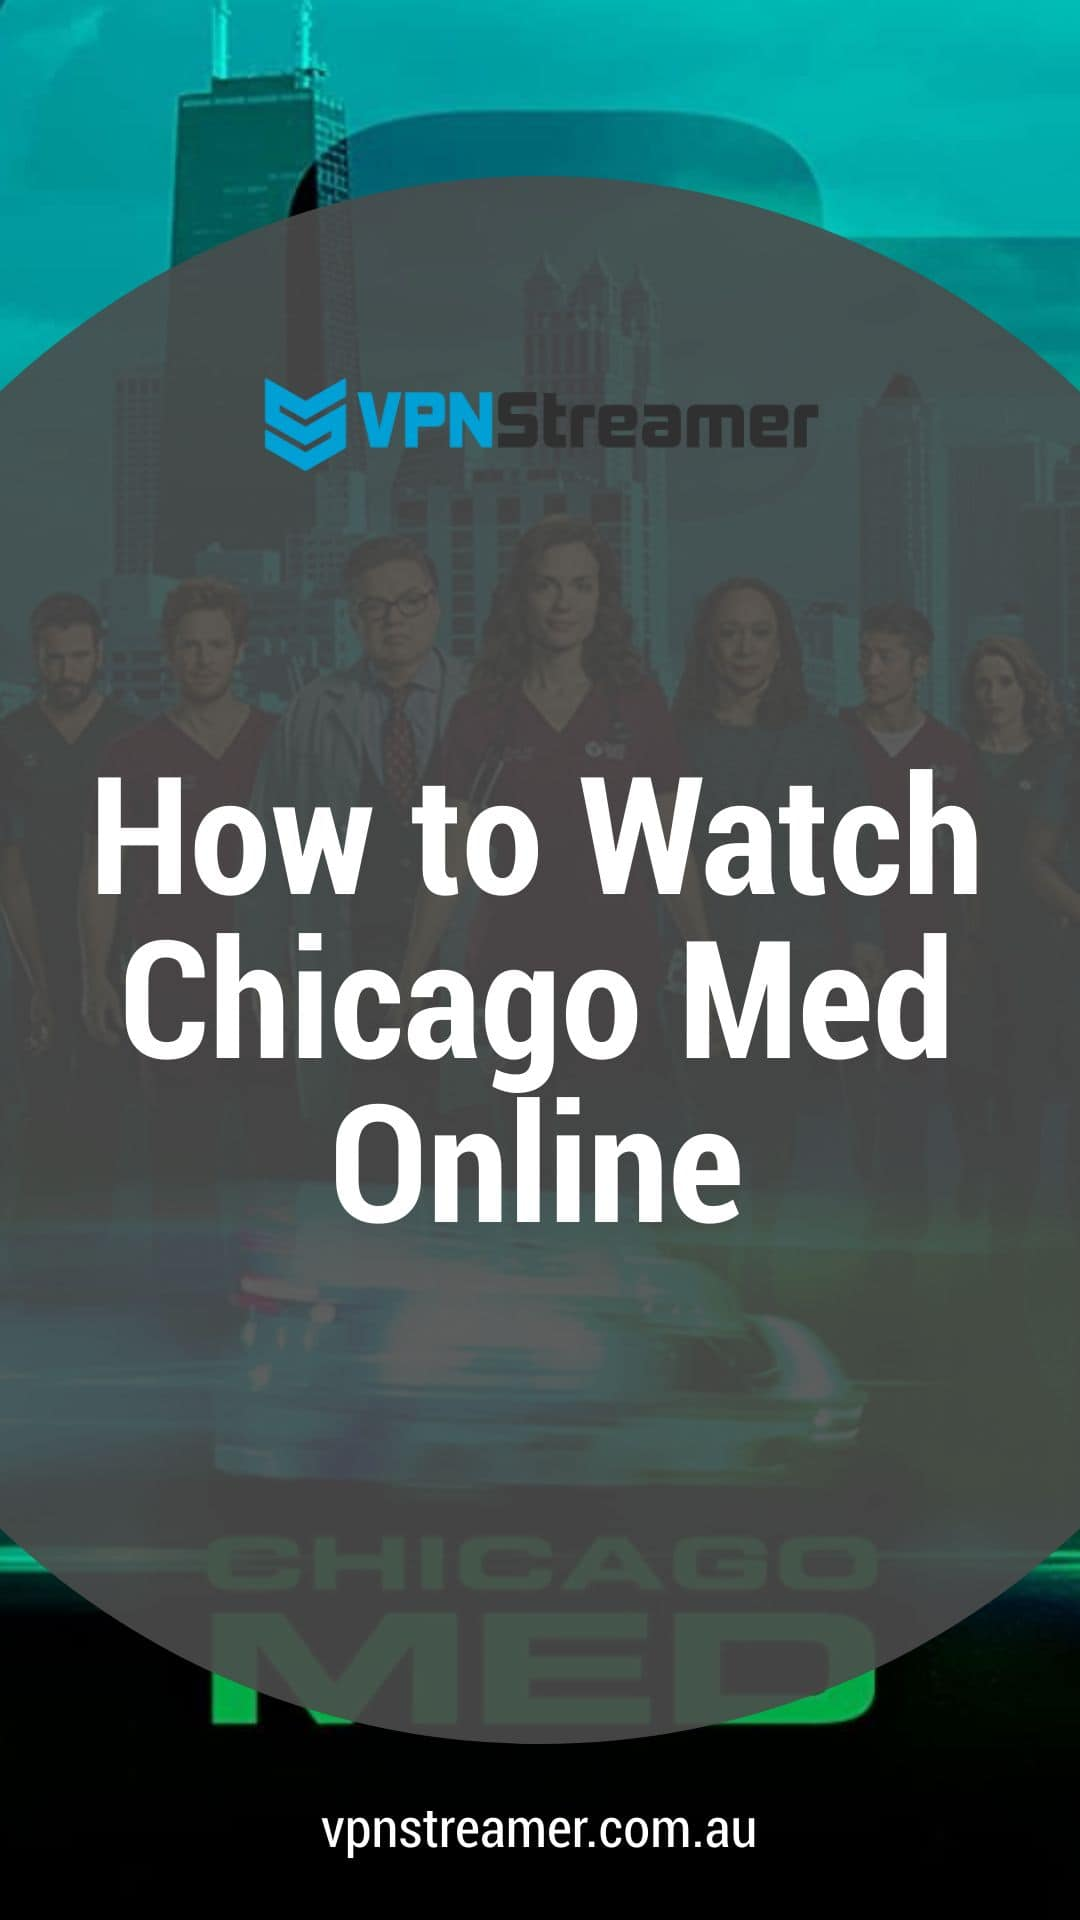 How to Watch Chicago Med Online